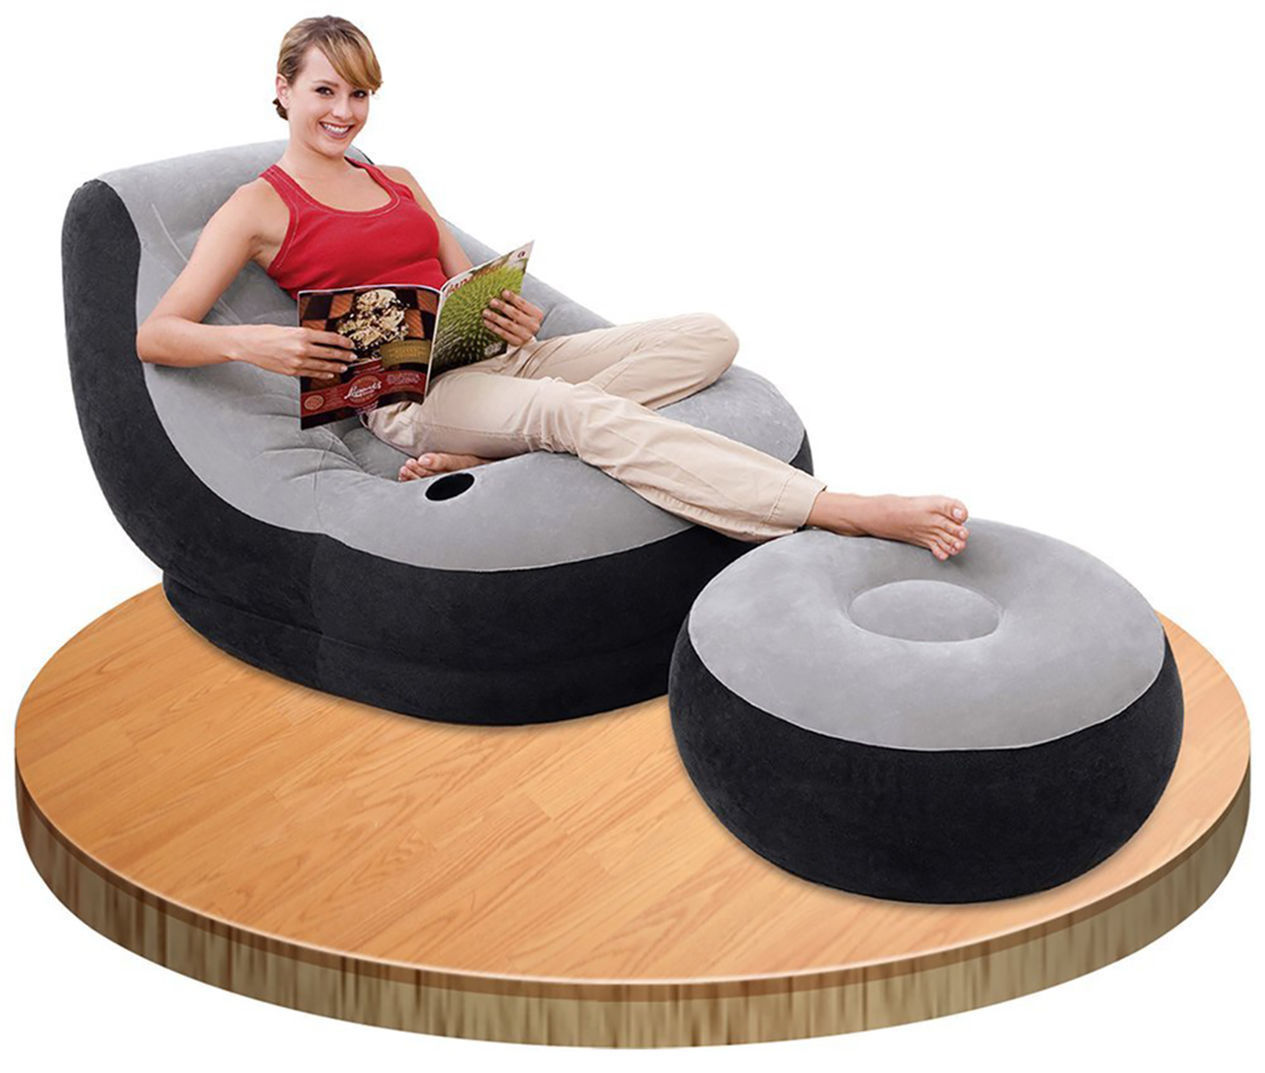 intex inflatable chair and ottoman brown leather eames lounge w chaise leisure air bed